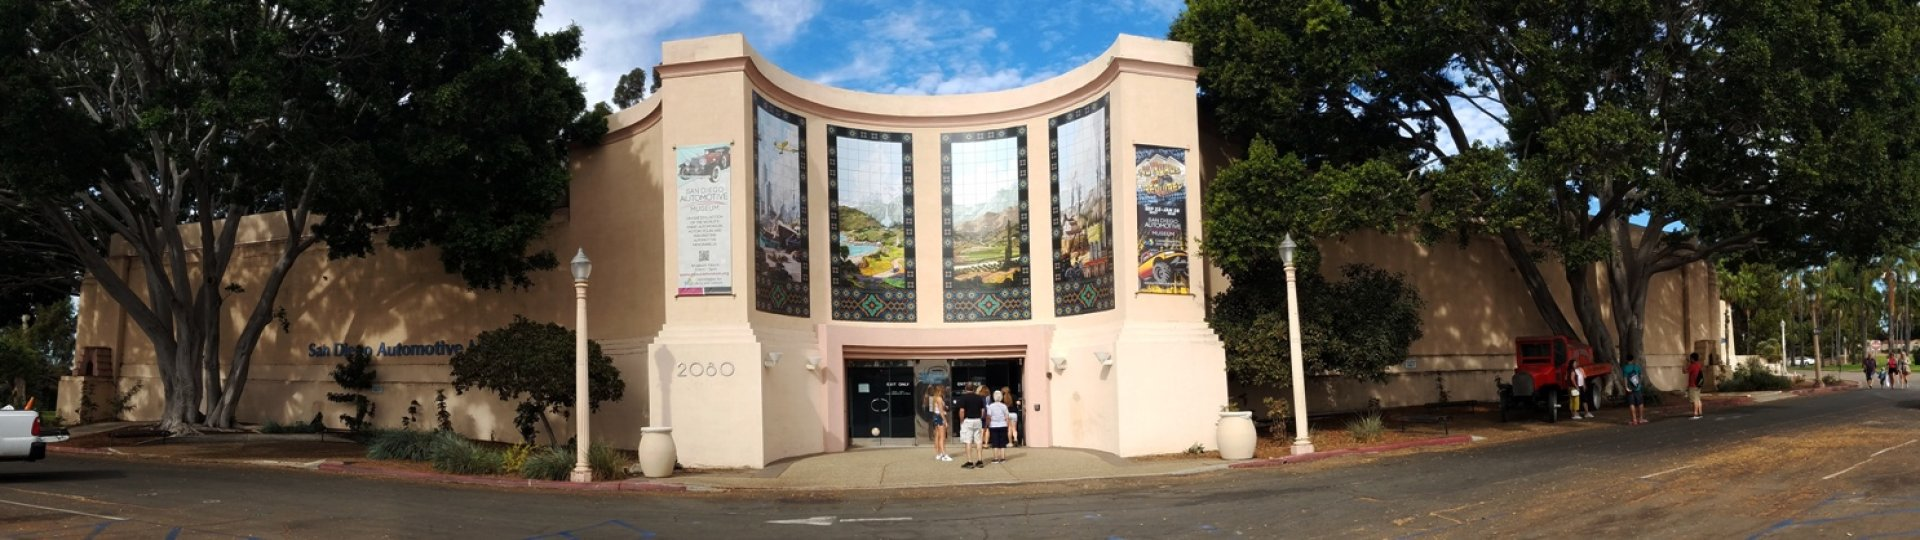 San Diego Automotive Museum Facade